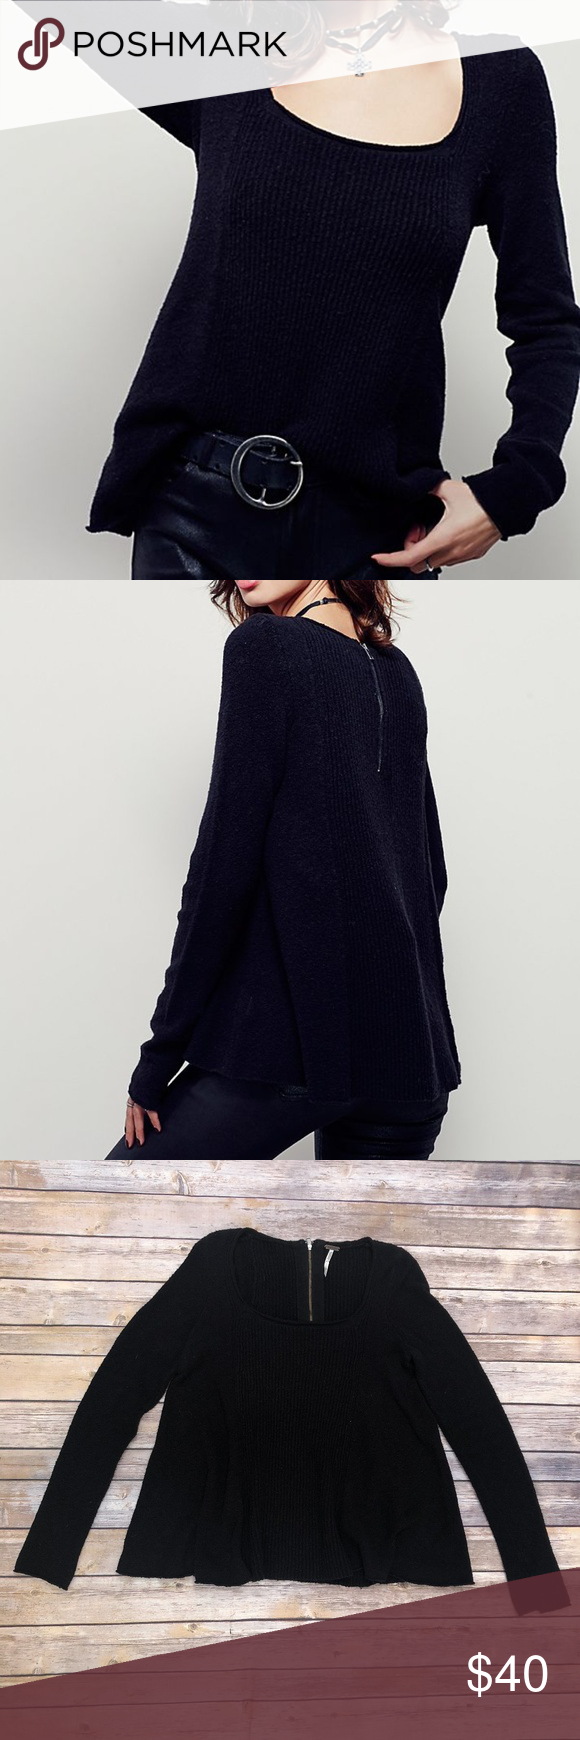 a956bebc55710 Free People Swing Out Sister Sweater Free People Swing Out Sister Sweater  Color black Ribbed detailing down the center Low scoop neck Exposed back  zipper ...